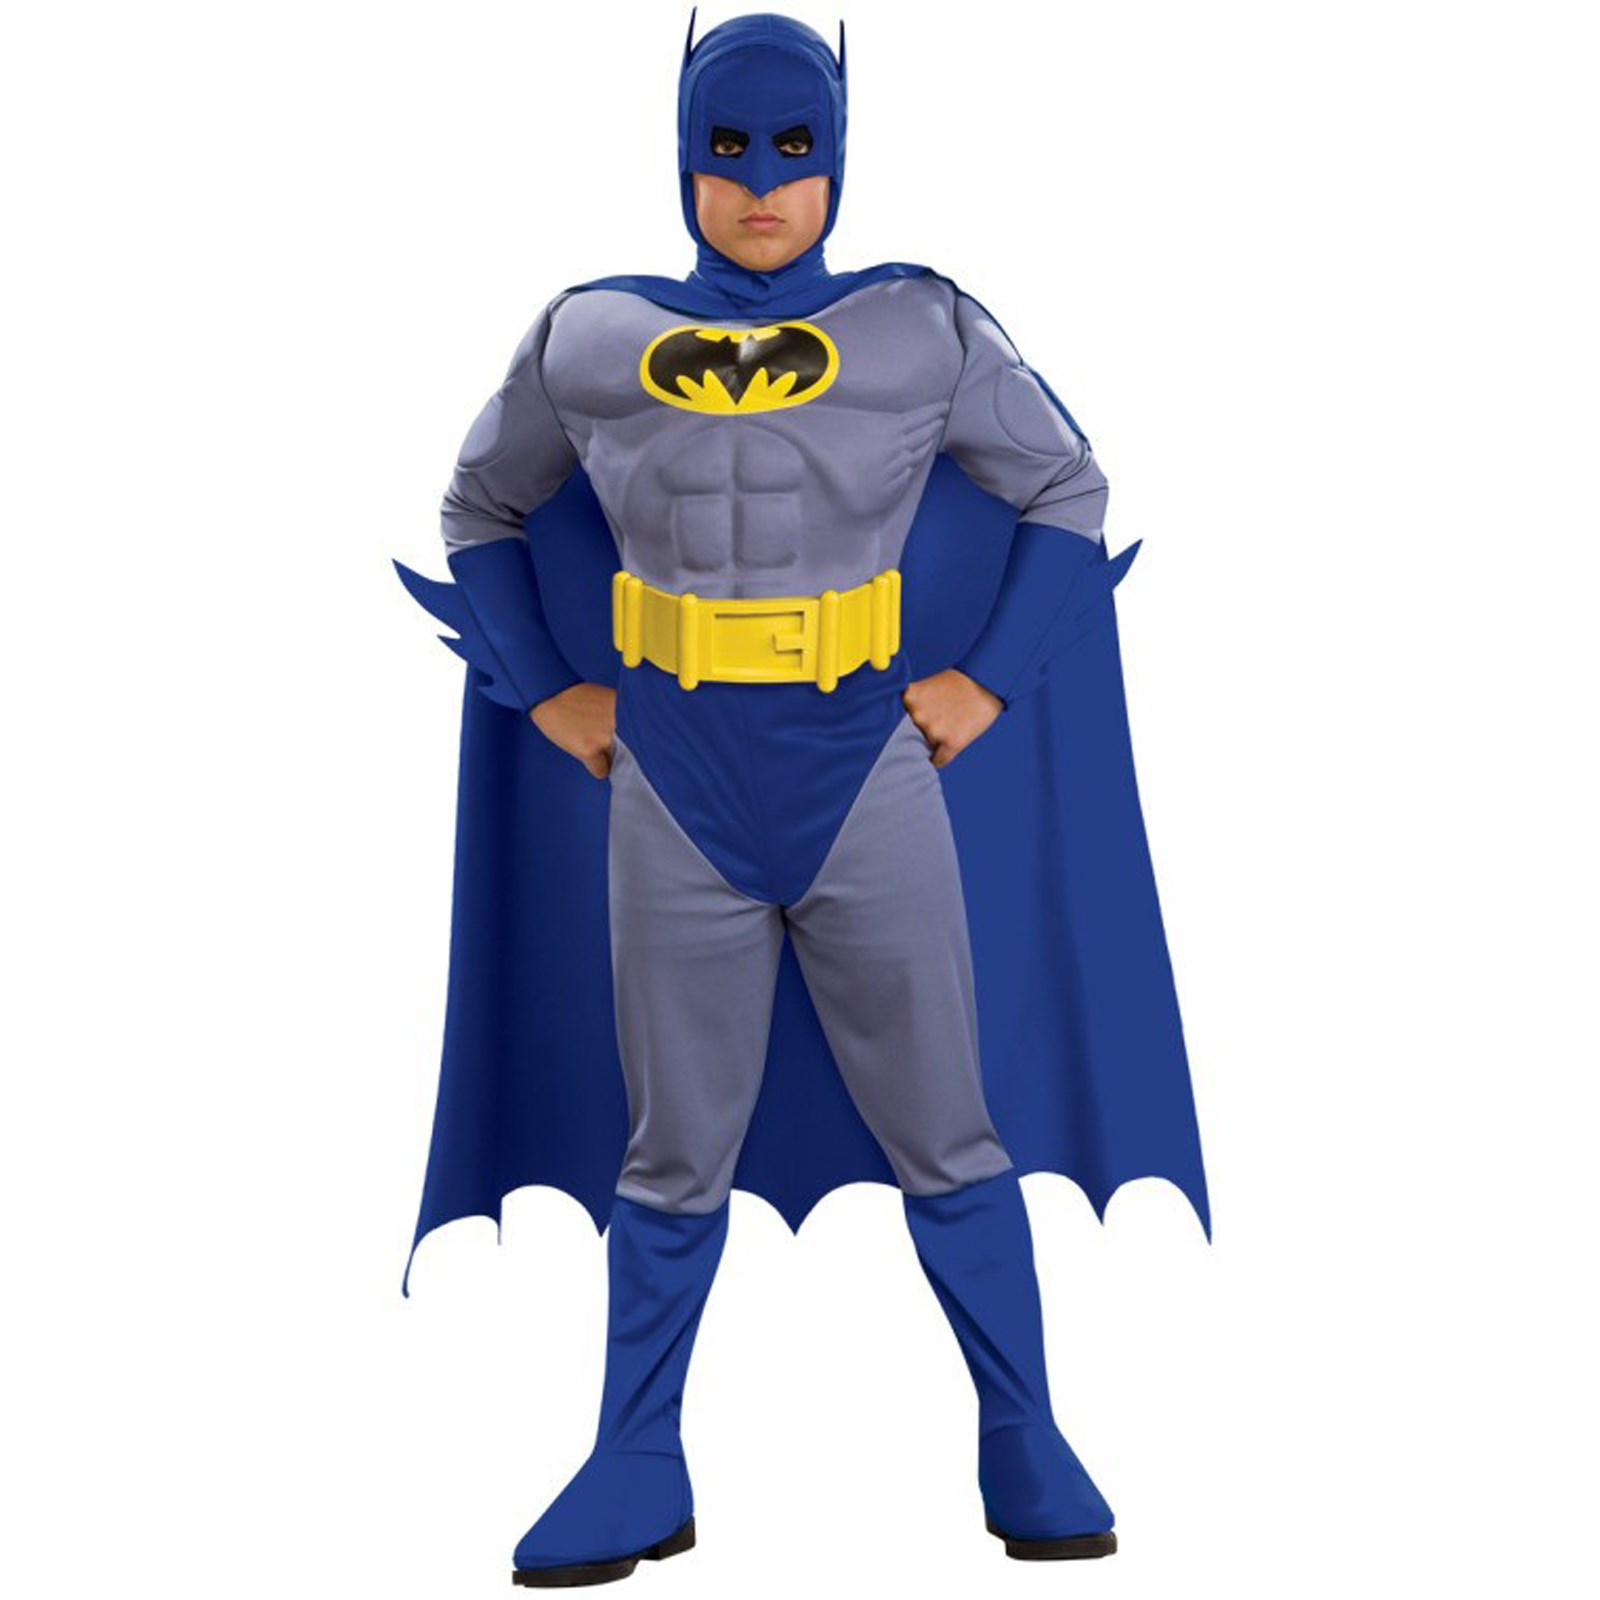 Batman Costumes - Become The Knight Of Gotham For Halloween